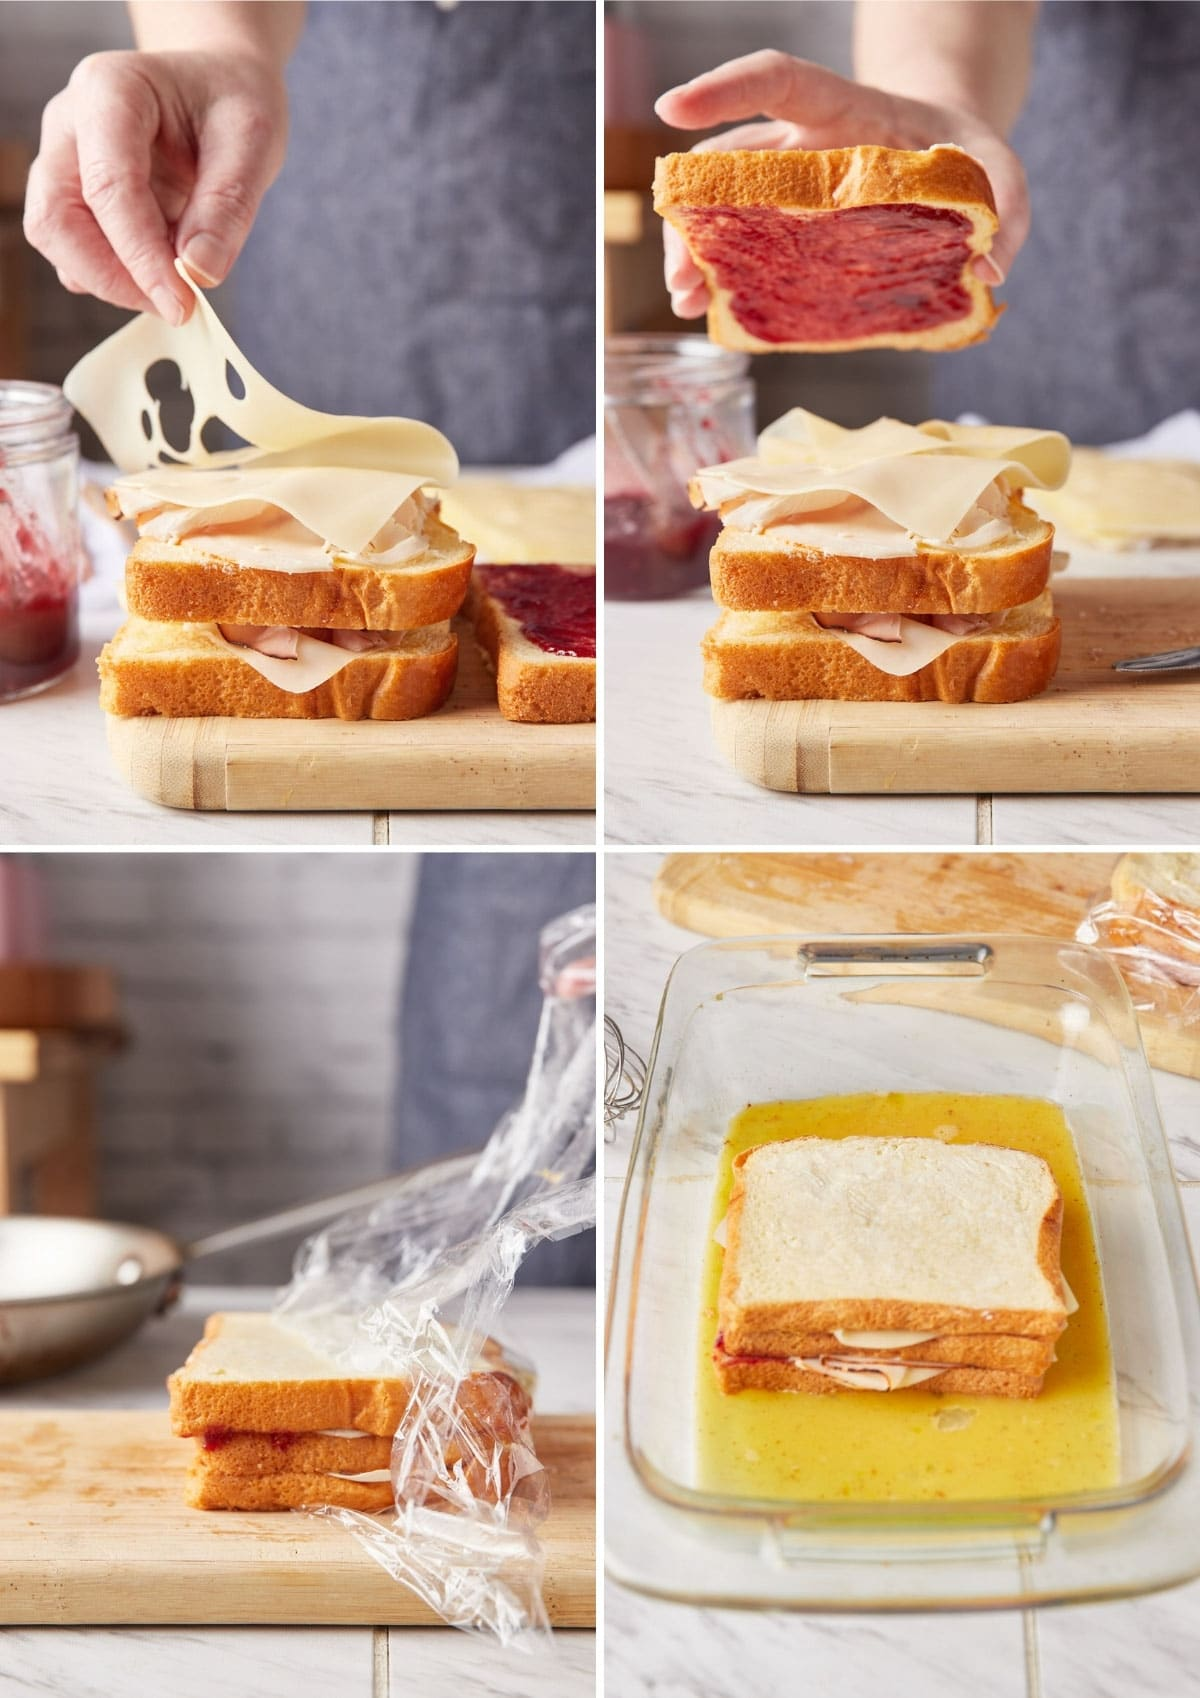 four photos showing the process of assembling a monte cristo sandwich: layering turkey and swiss cheese, topping the sandwich with a jam-spread slice of bread, unwrapping plastic wrap from the pressed sandwich, and dipping the sandwich into a dish of egg custard